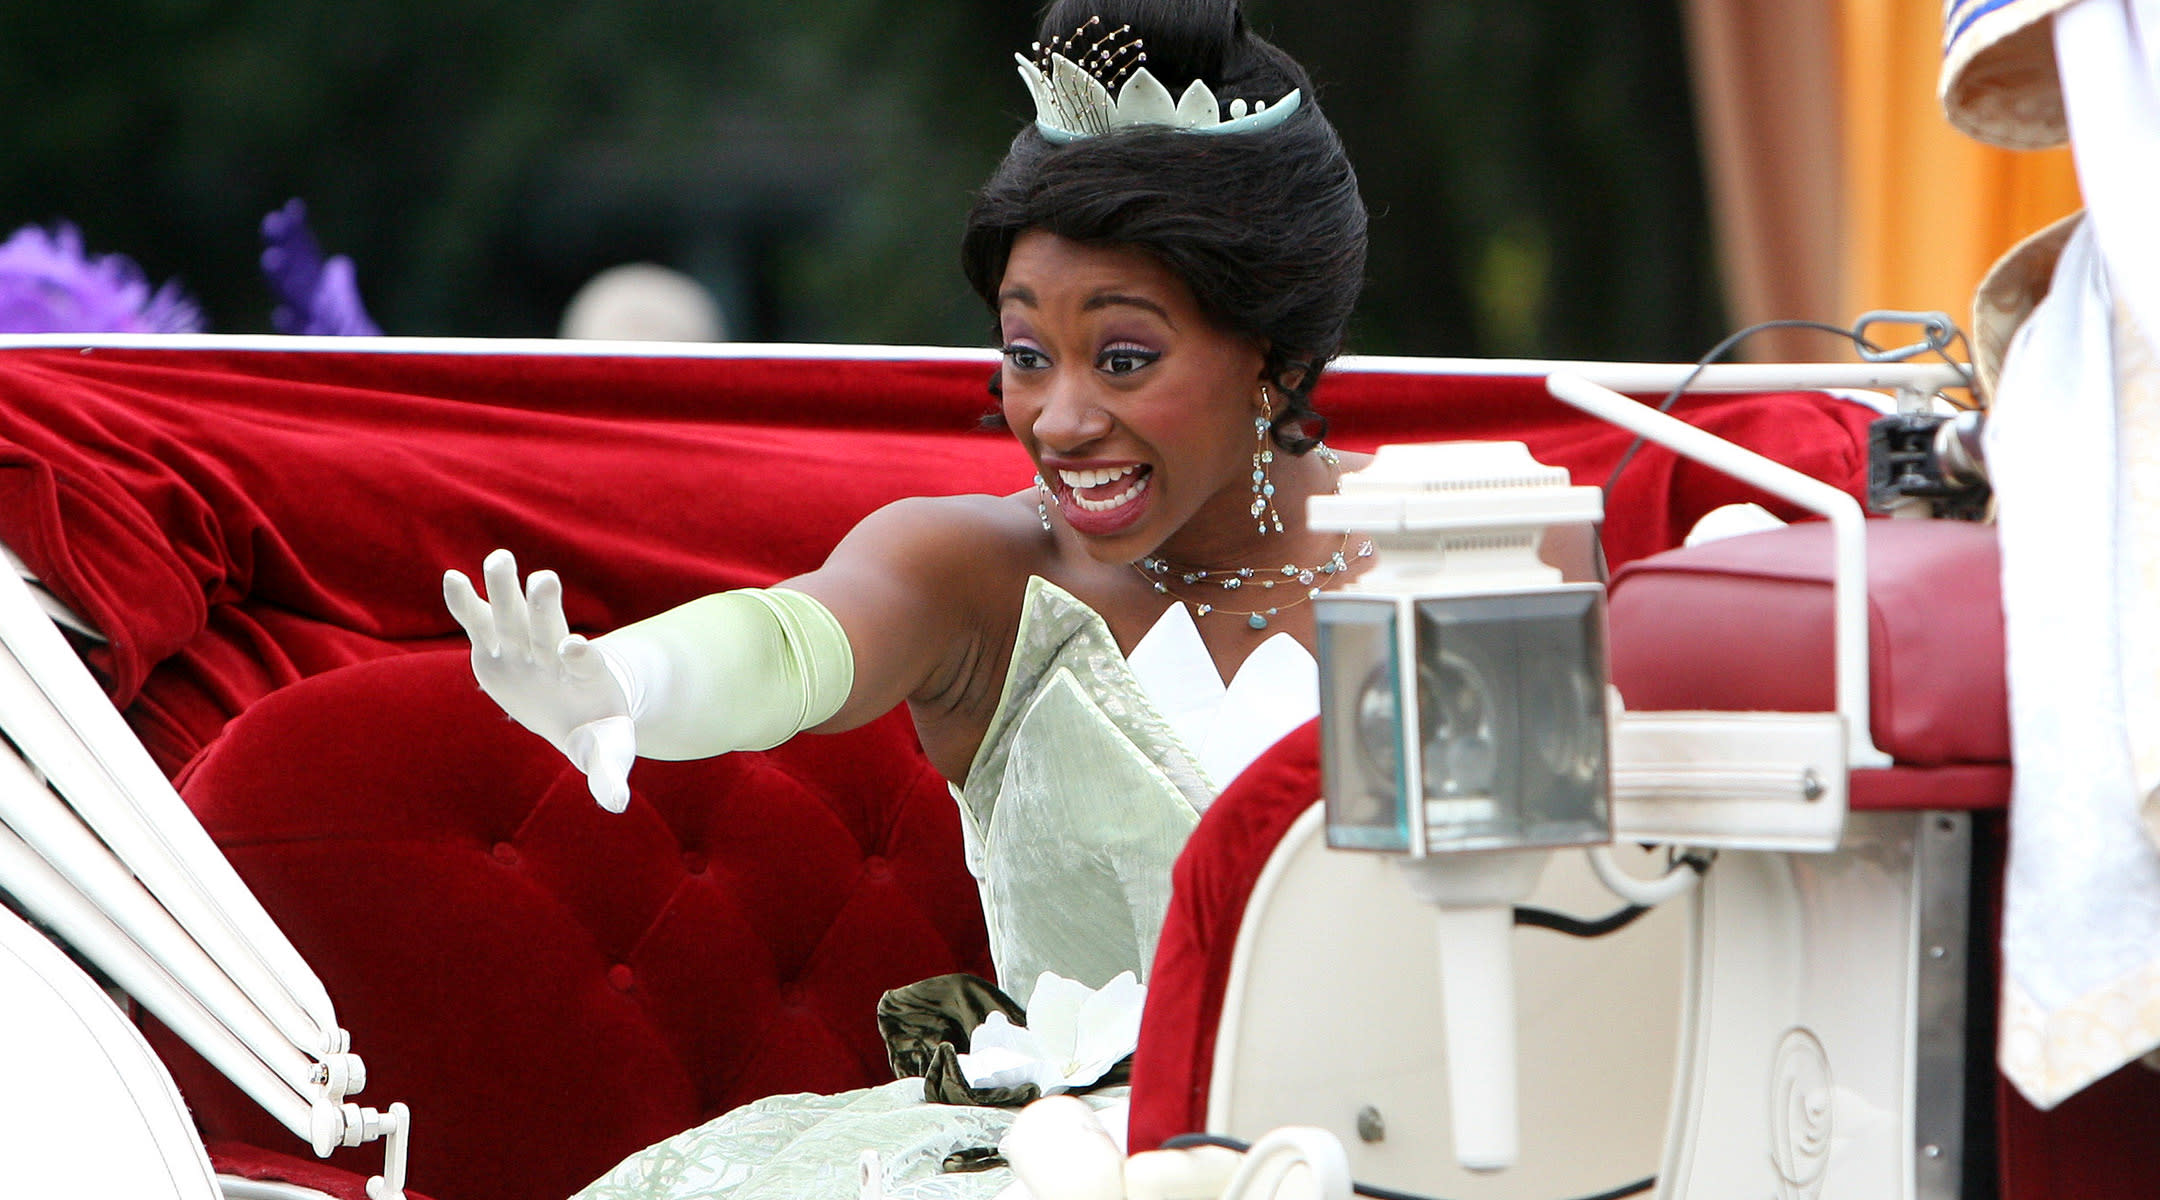 disney princess tiana from princess and the frog